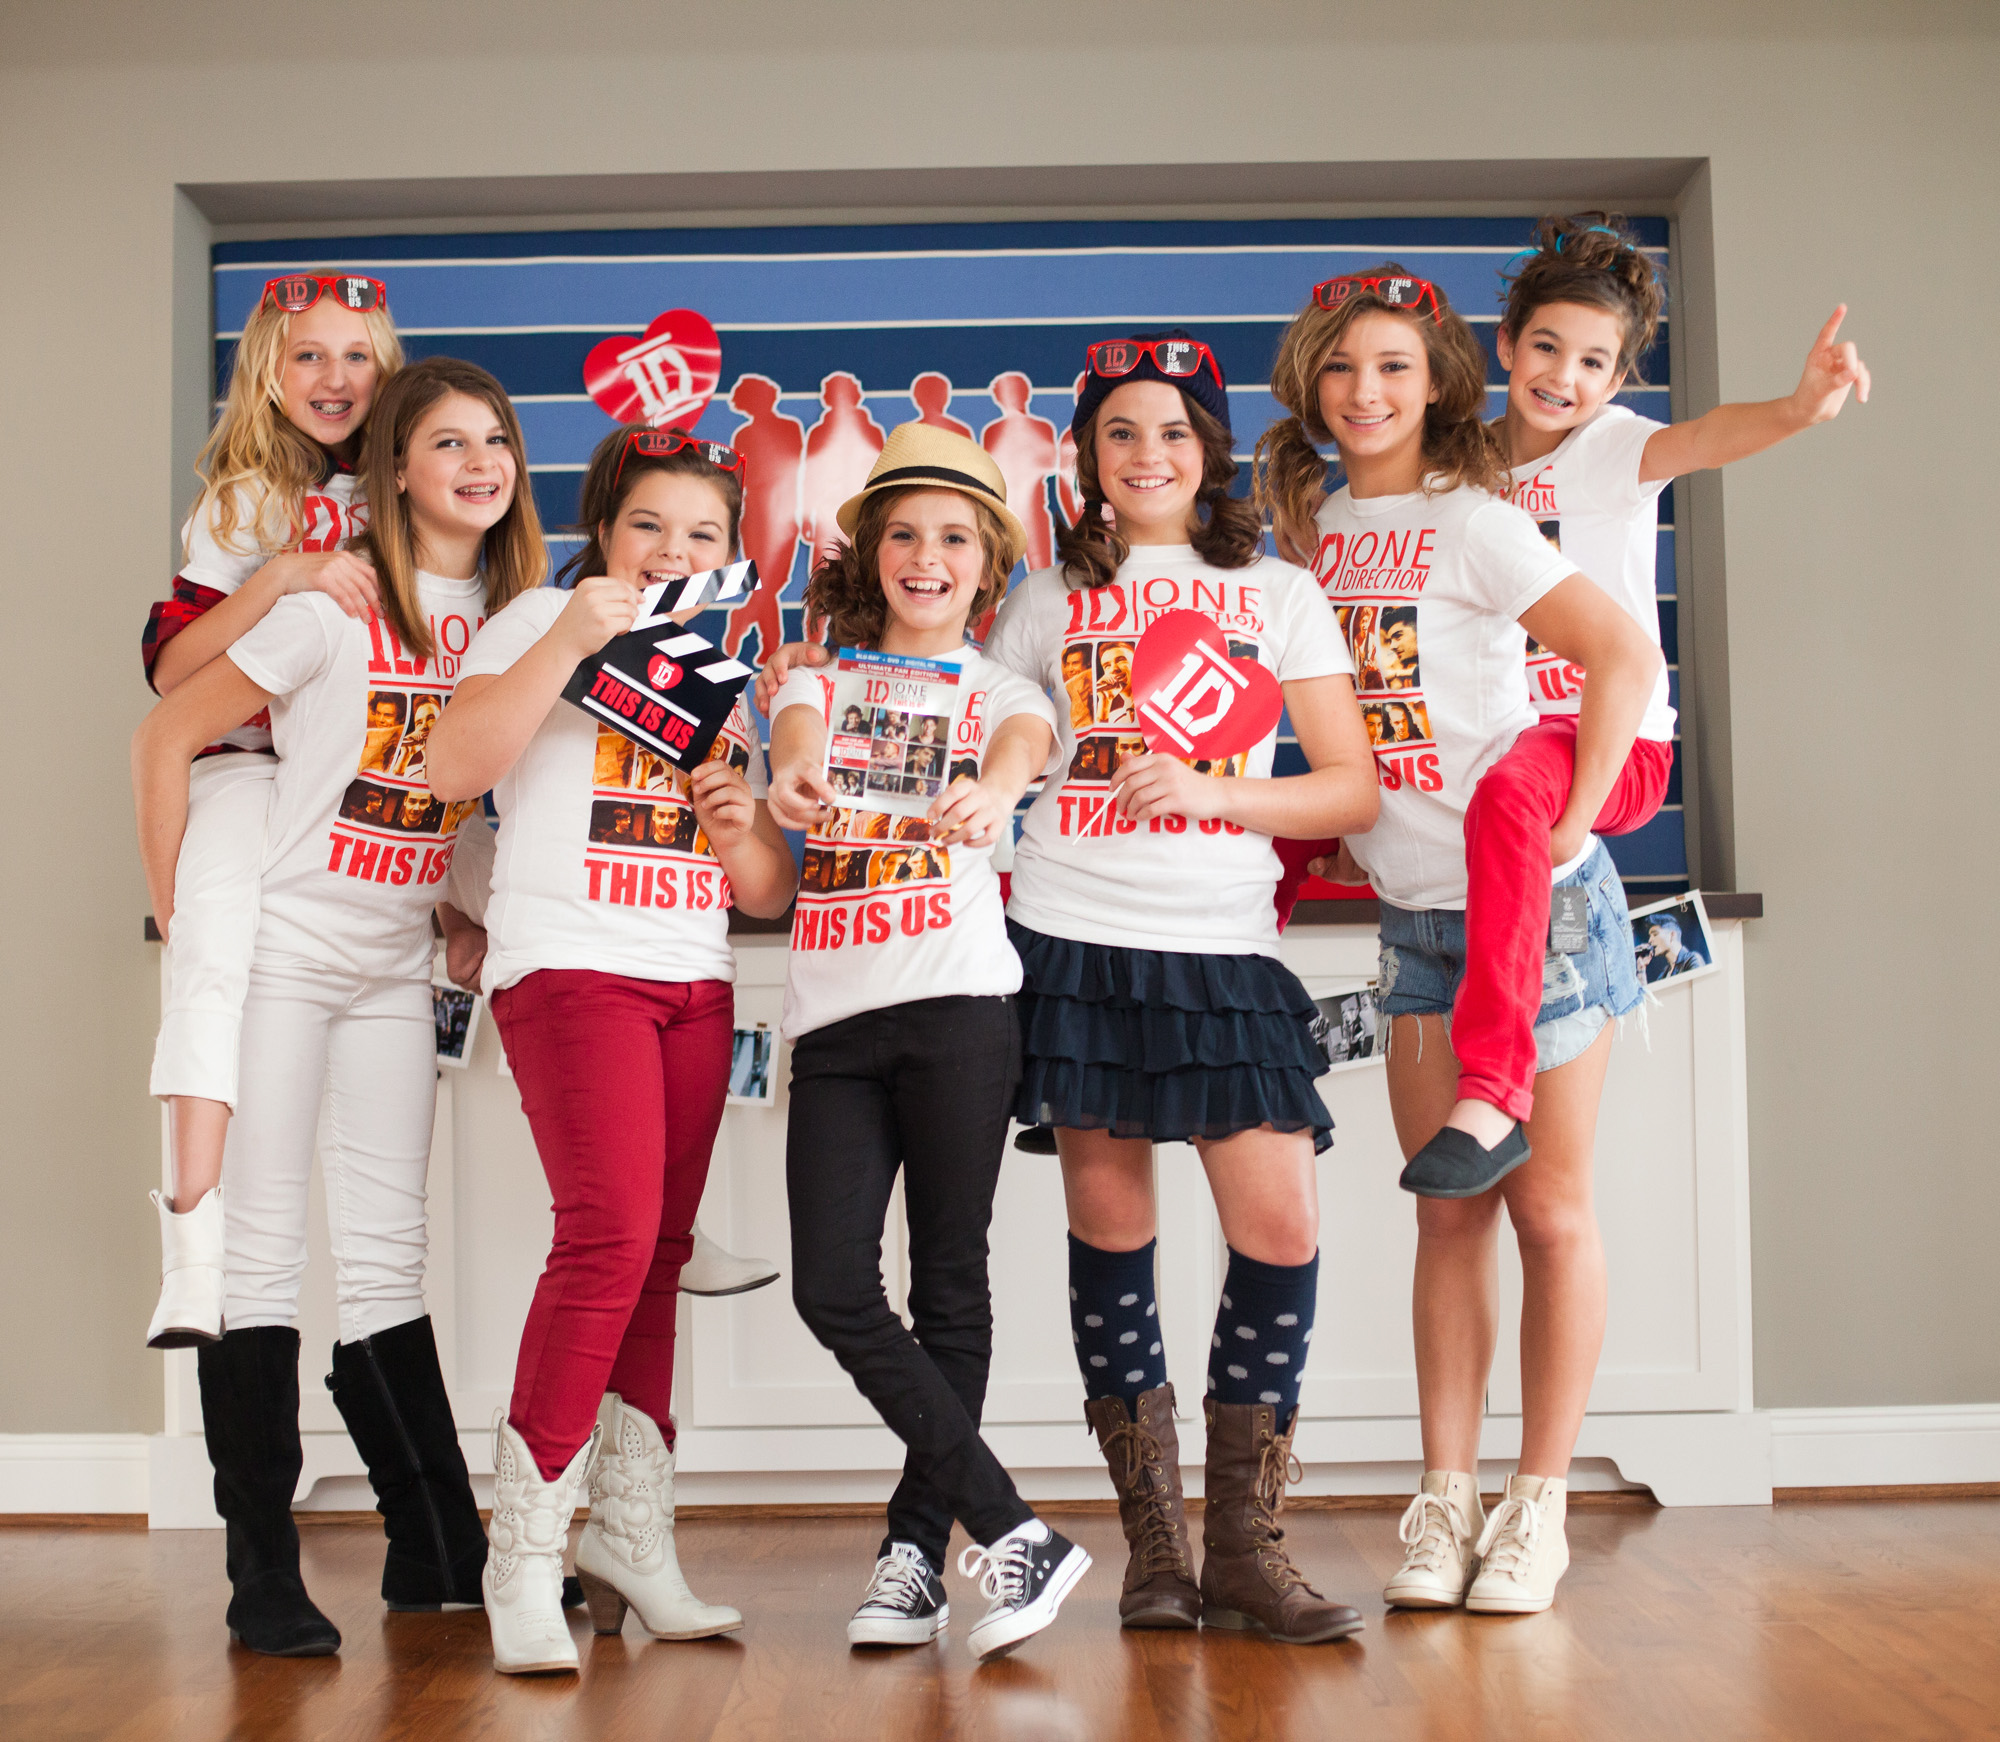 one-direction-movie-viewing-party-52